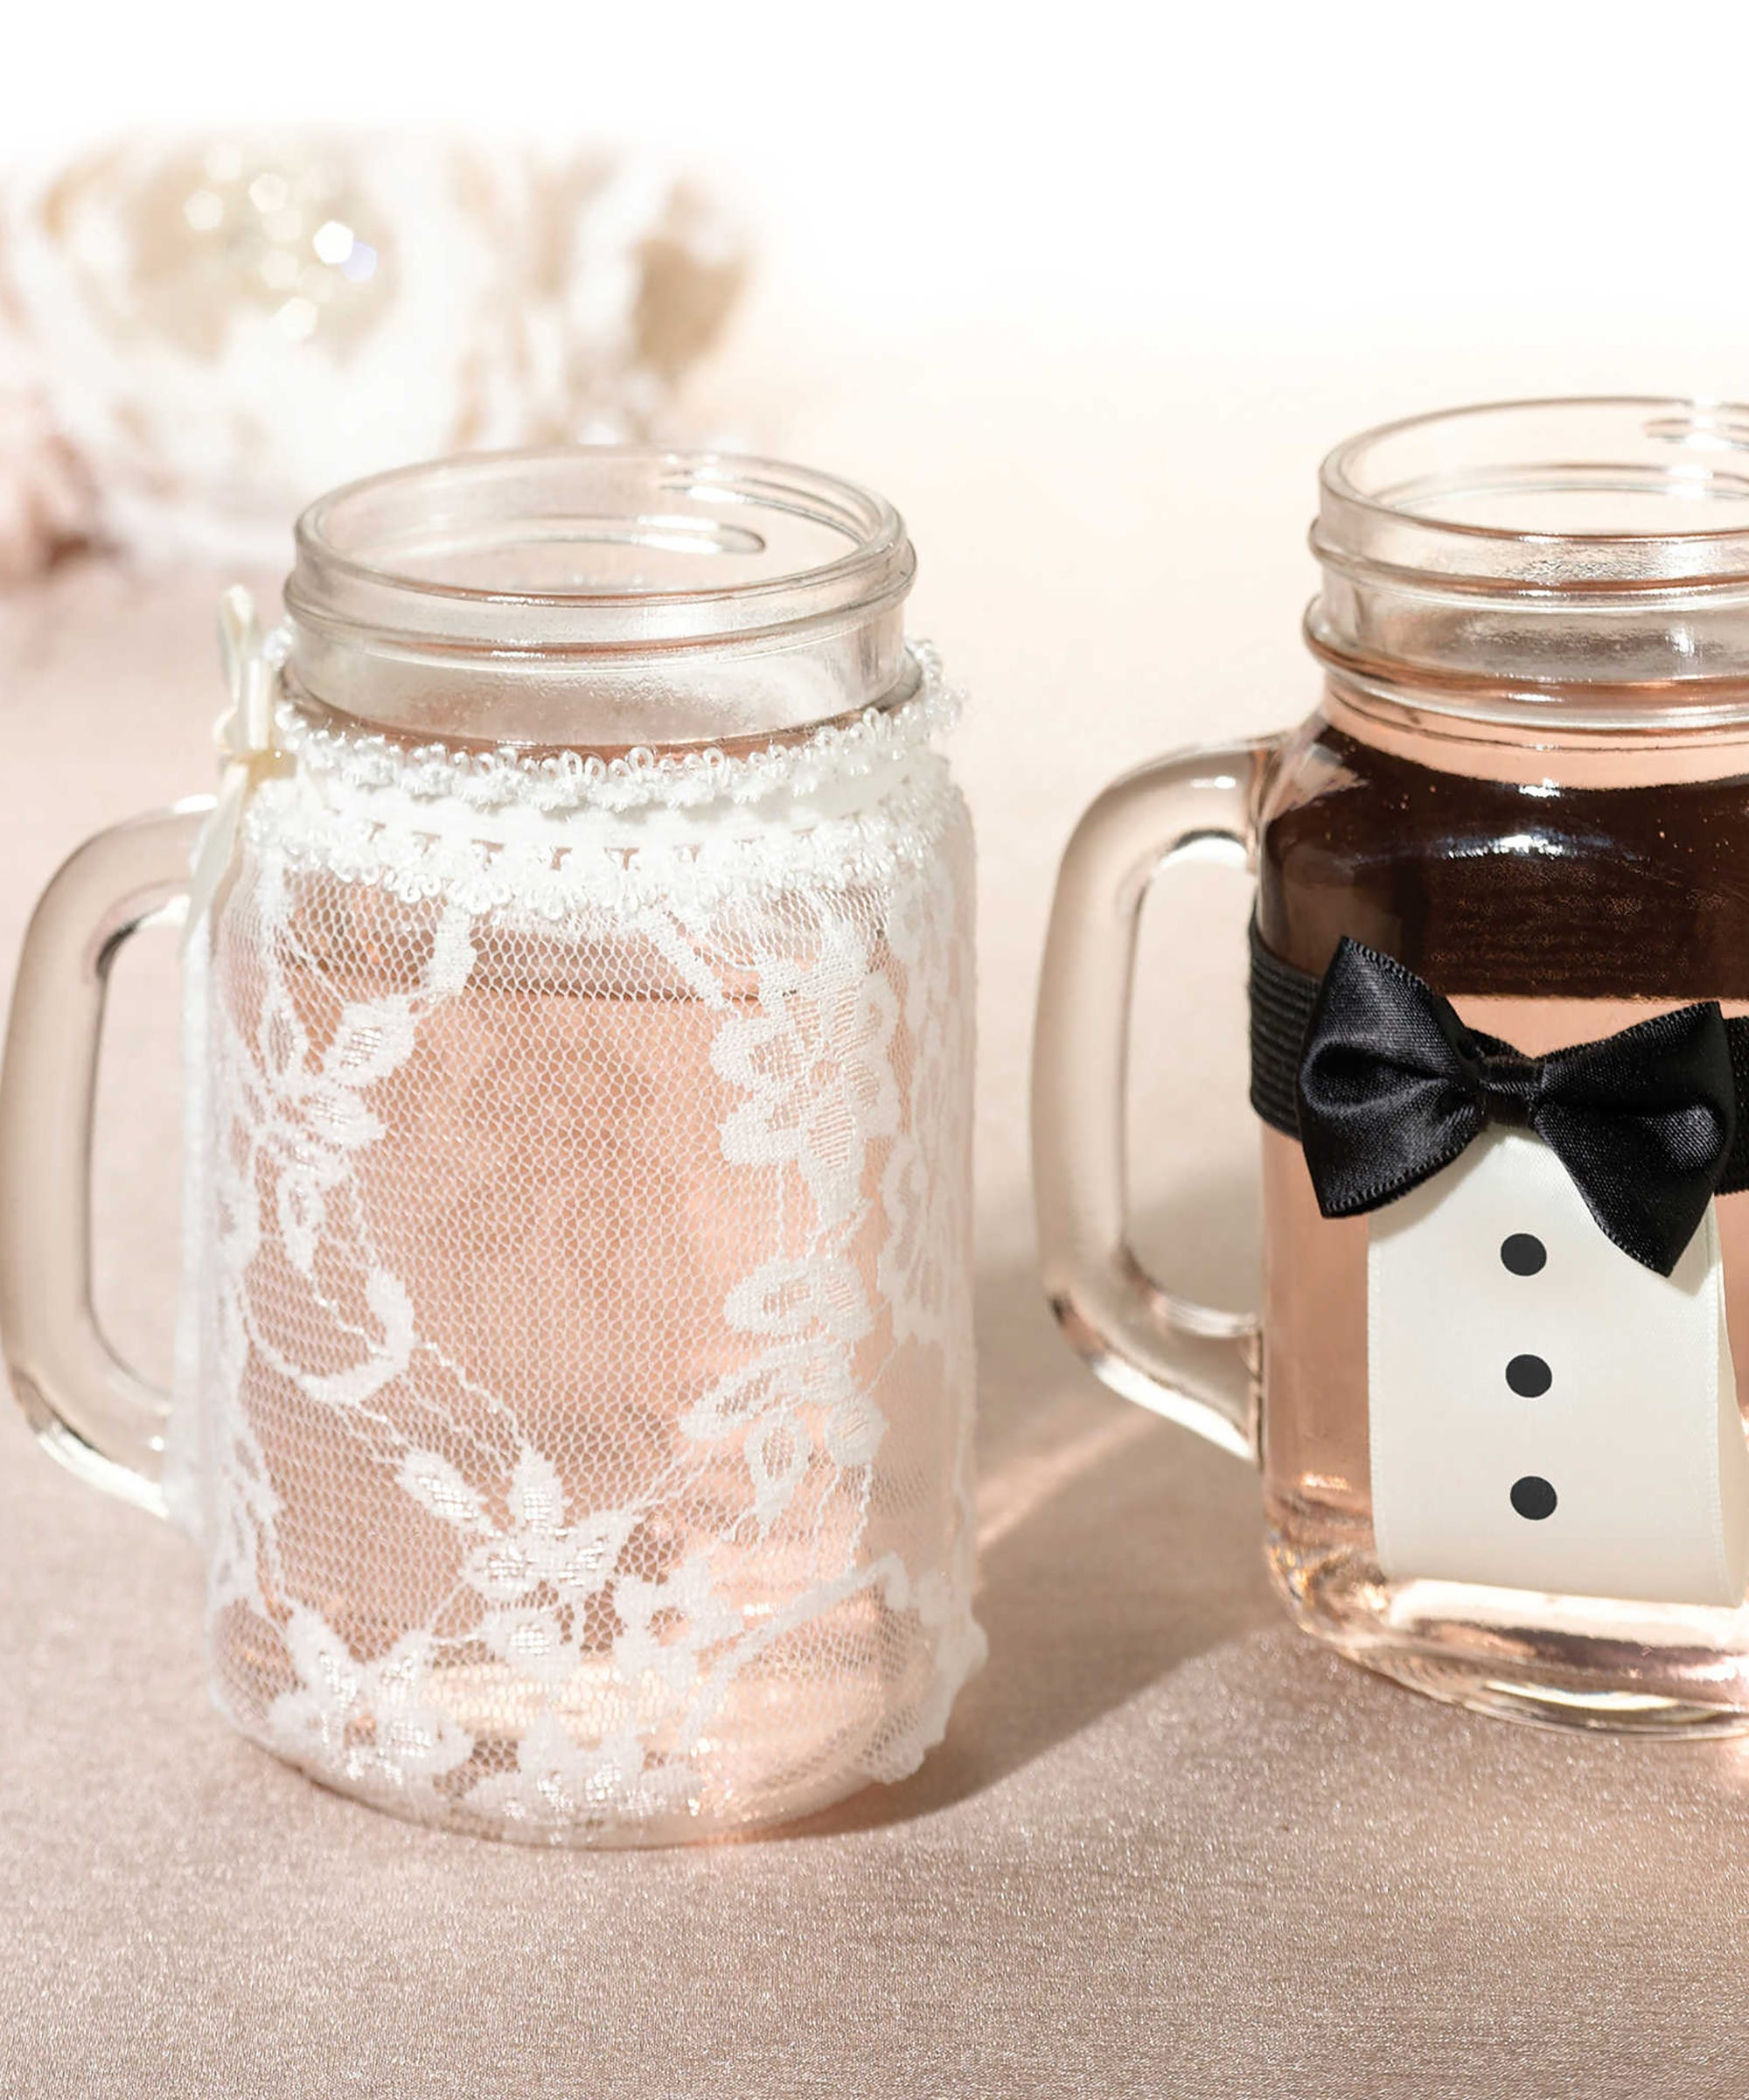 Expensive Wedding Gifts For Couples : Ideas Expensive Wedding Gift Ideas wedding gift ideas best presents ...